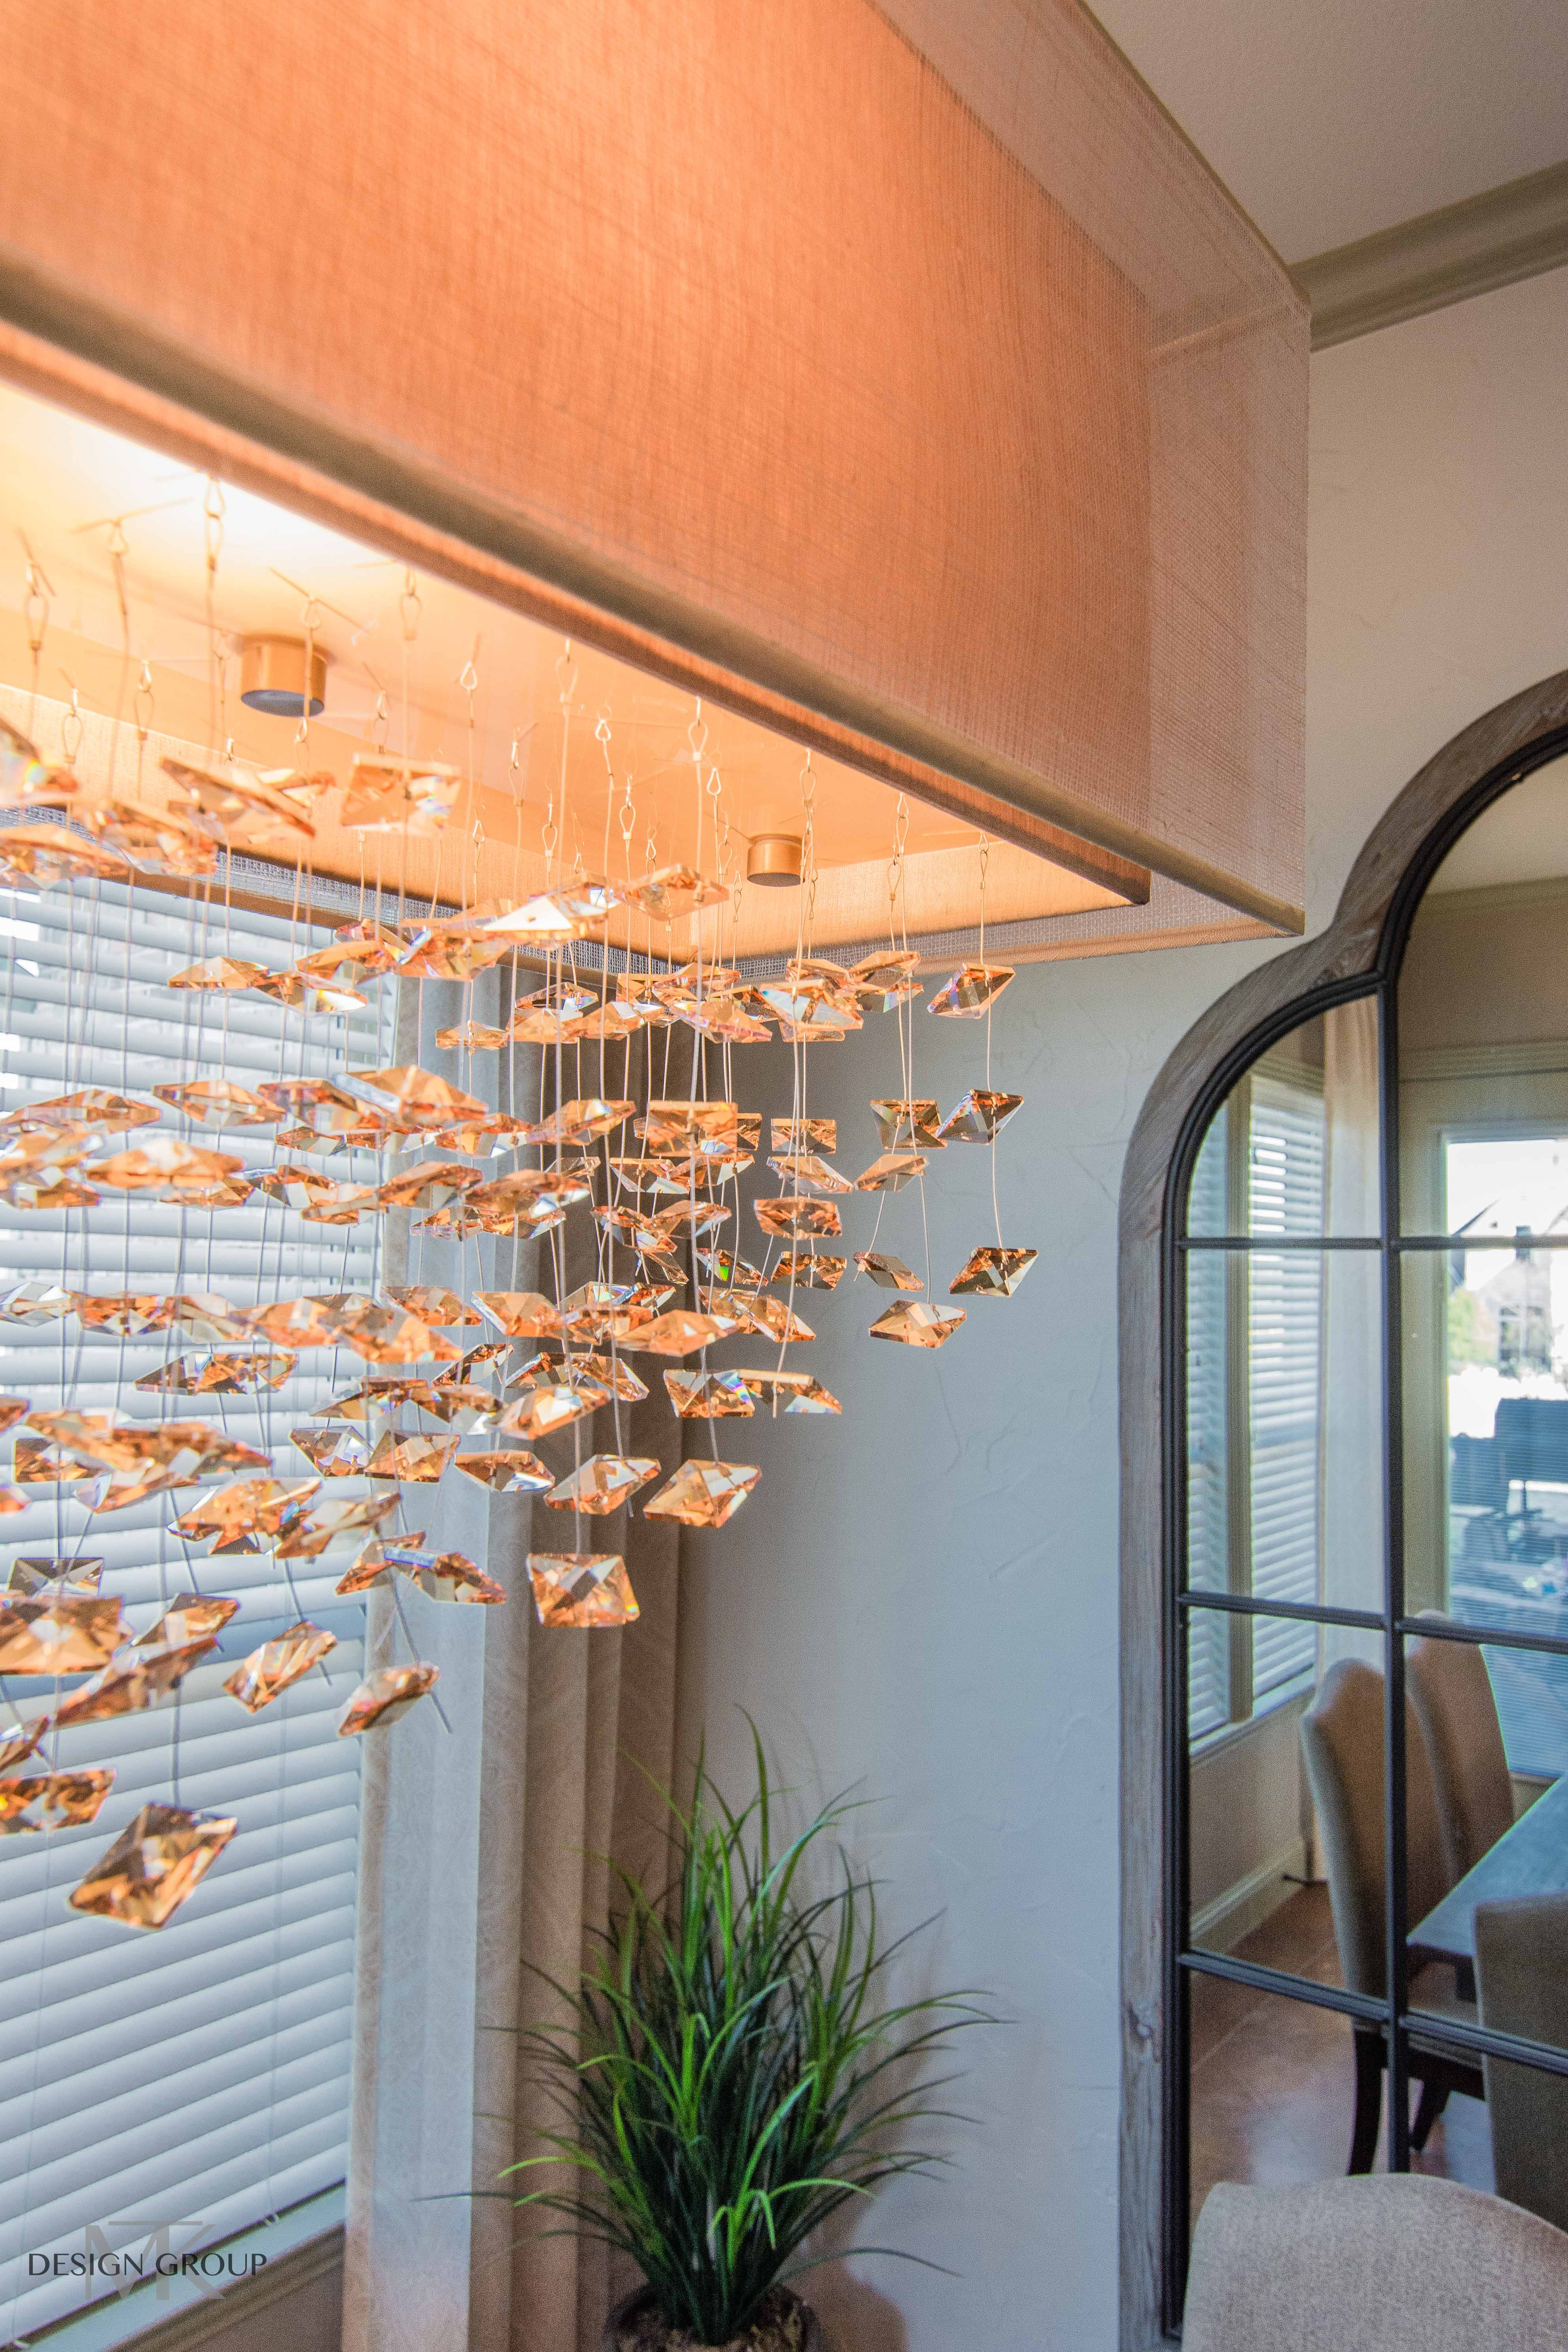 Midlothian Transitional Home Design, MTK Design Group, DFW Interior Decorating Services (22 of 39)